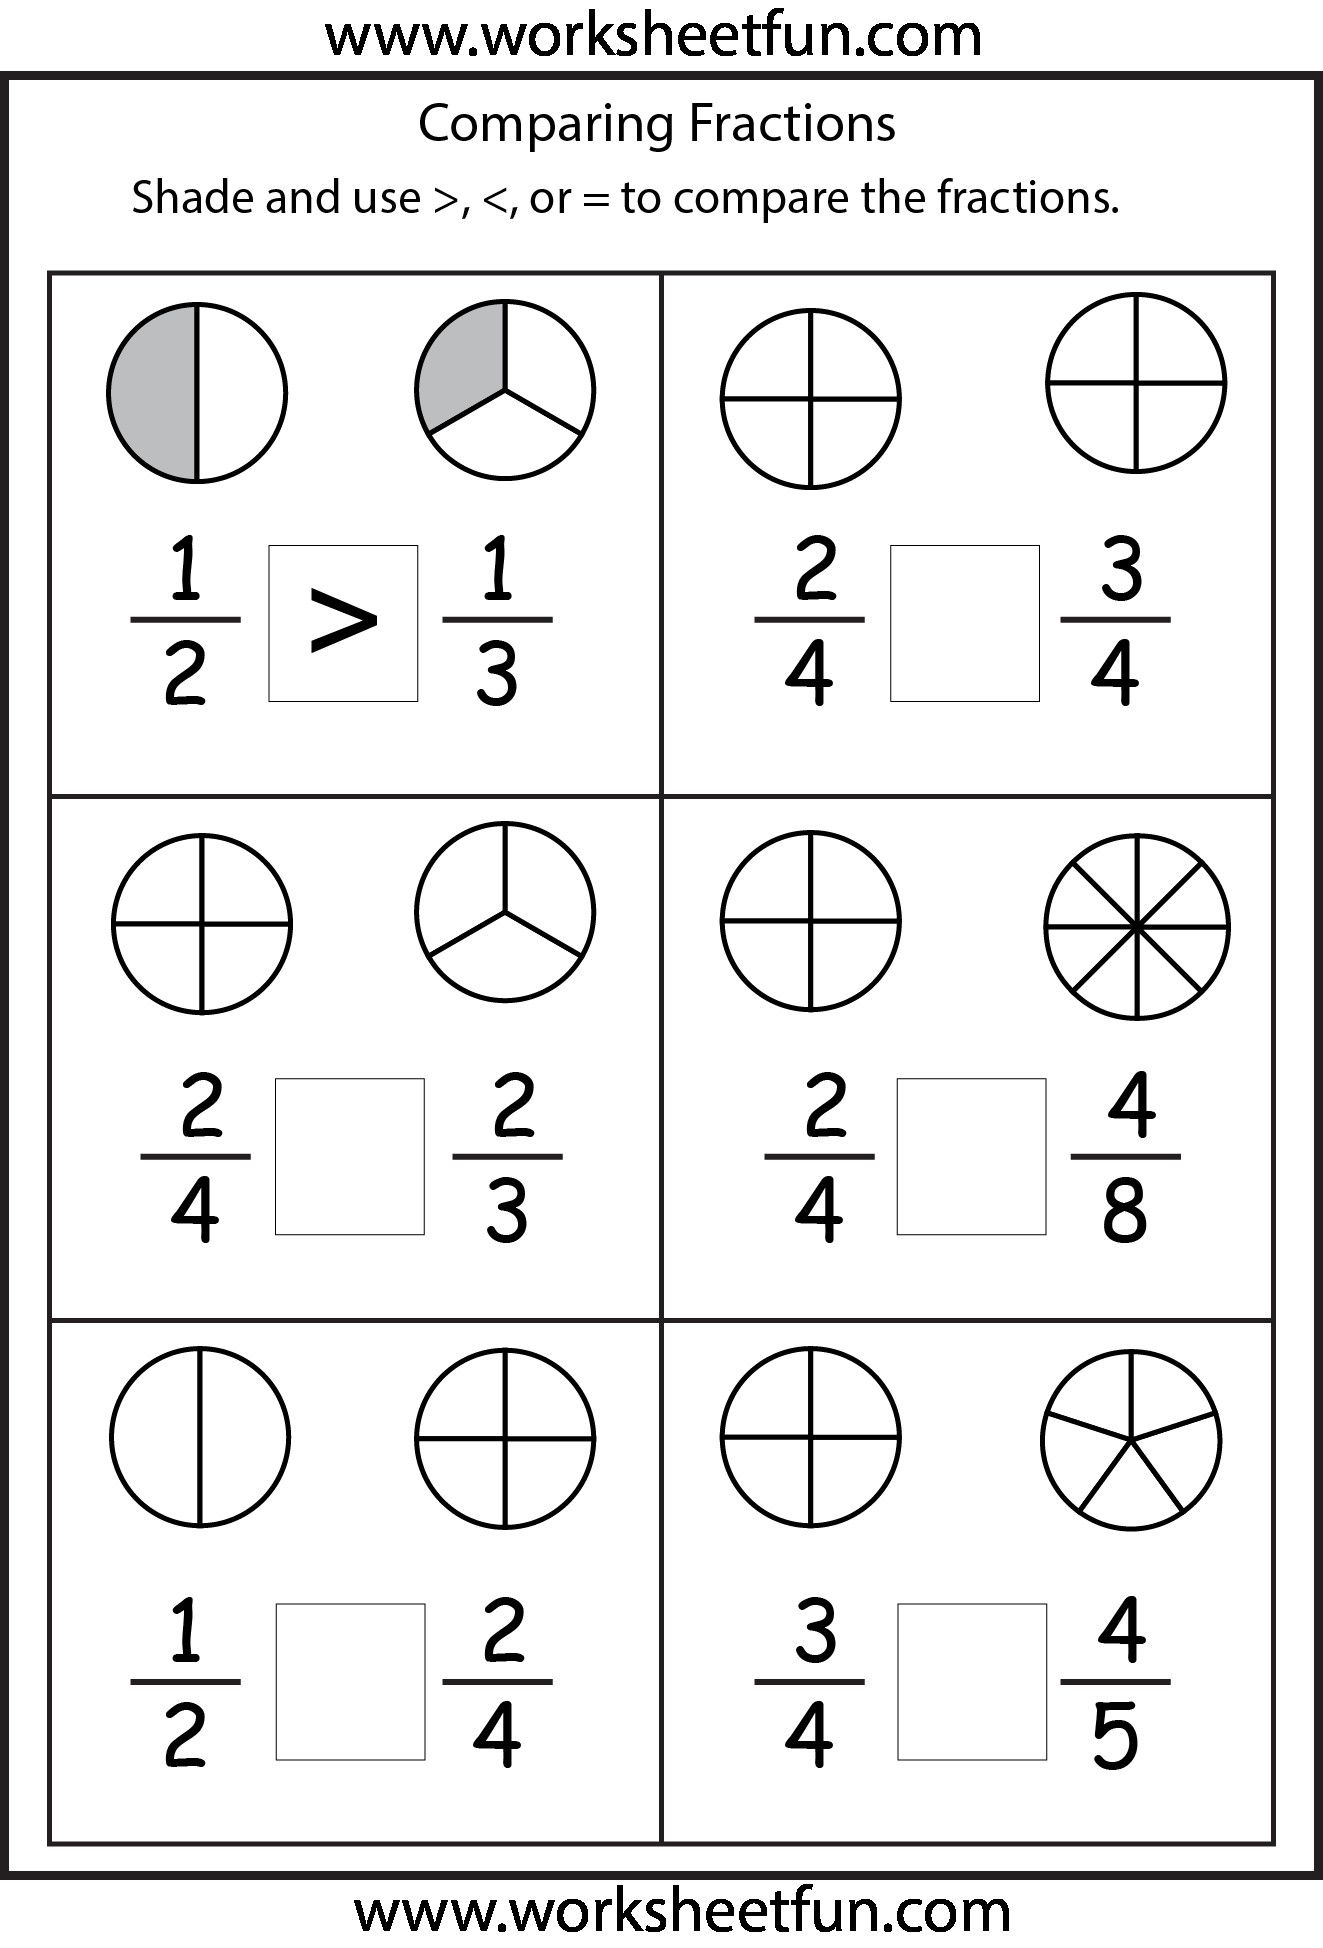 medium resolution of 5 Adding Fractions with Like Denominators Worksheets 2 in 2020   2nd grade  math worksheets